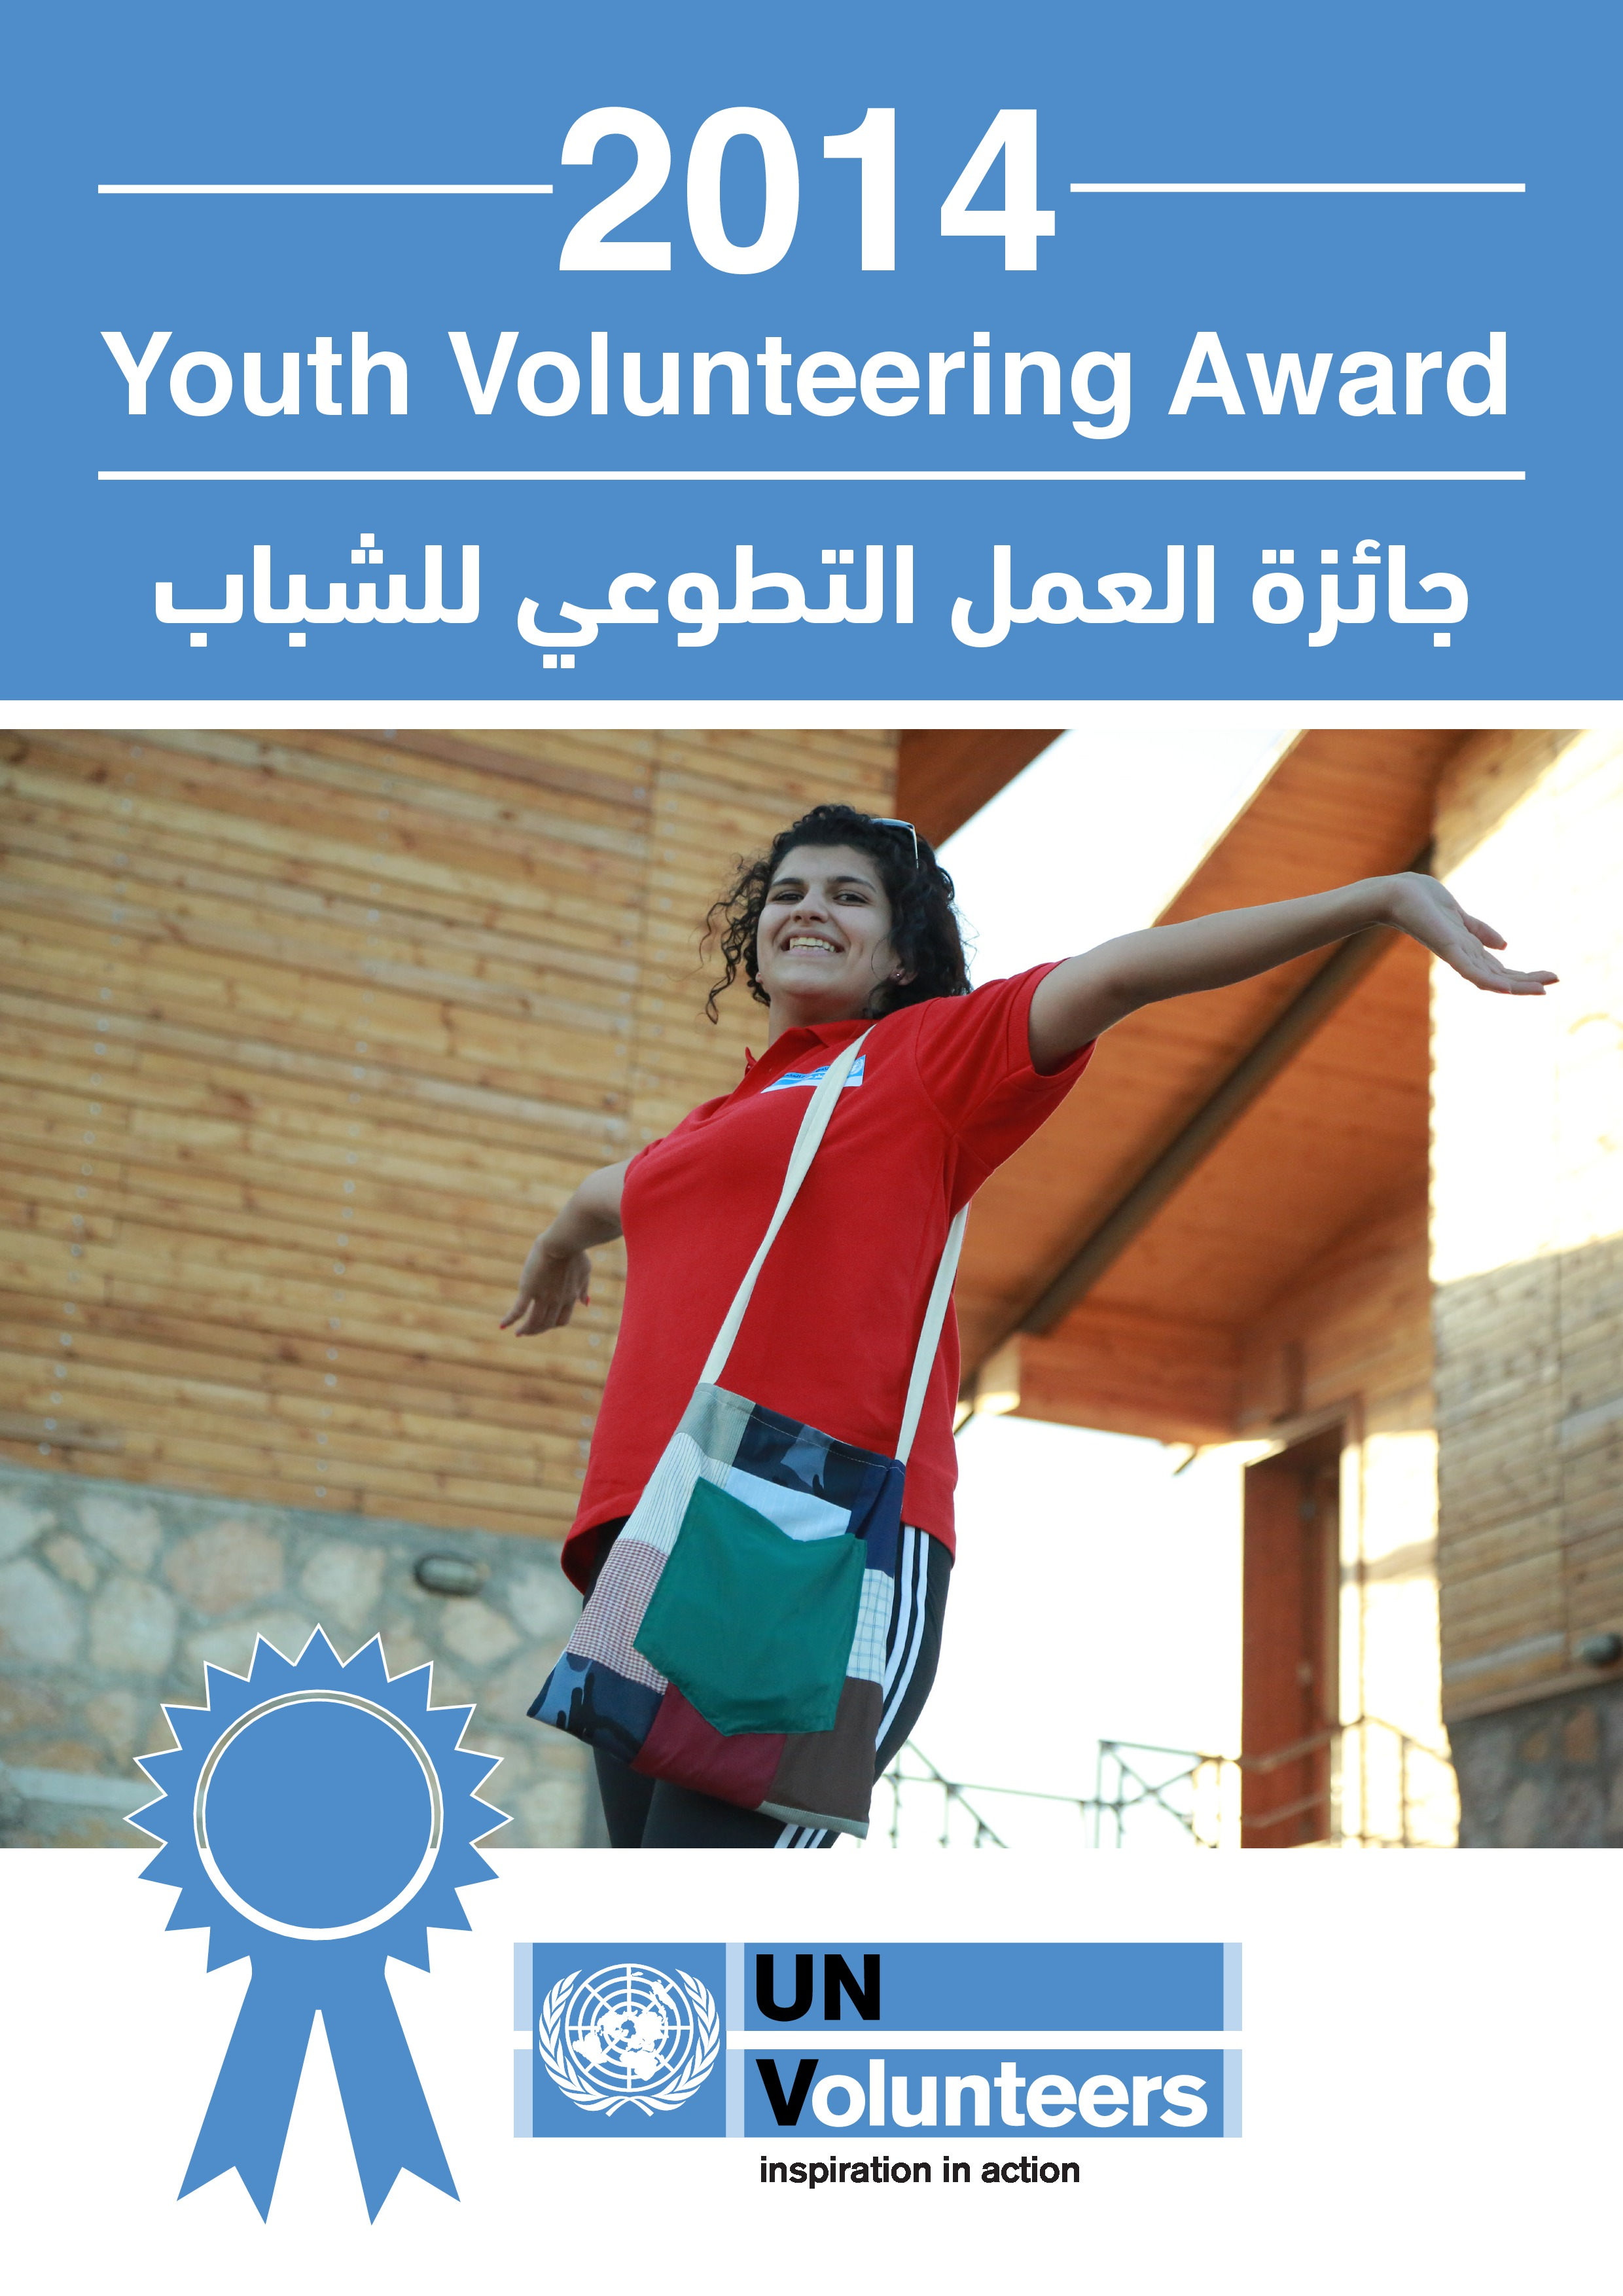 UNV Youth Volunteering Award 2014 – Arab Countries